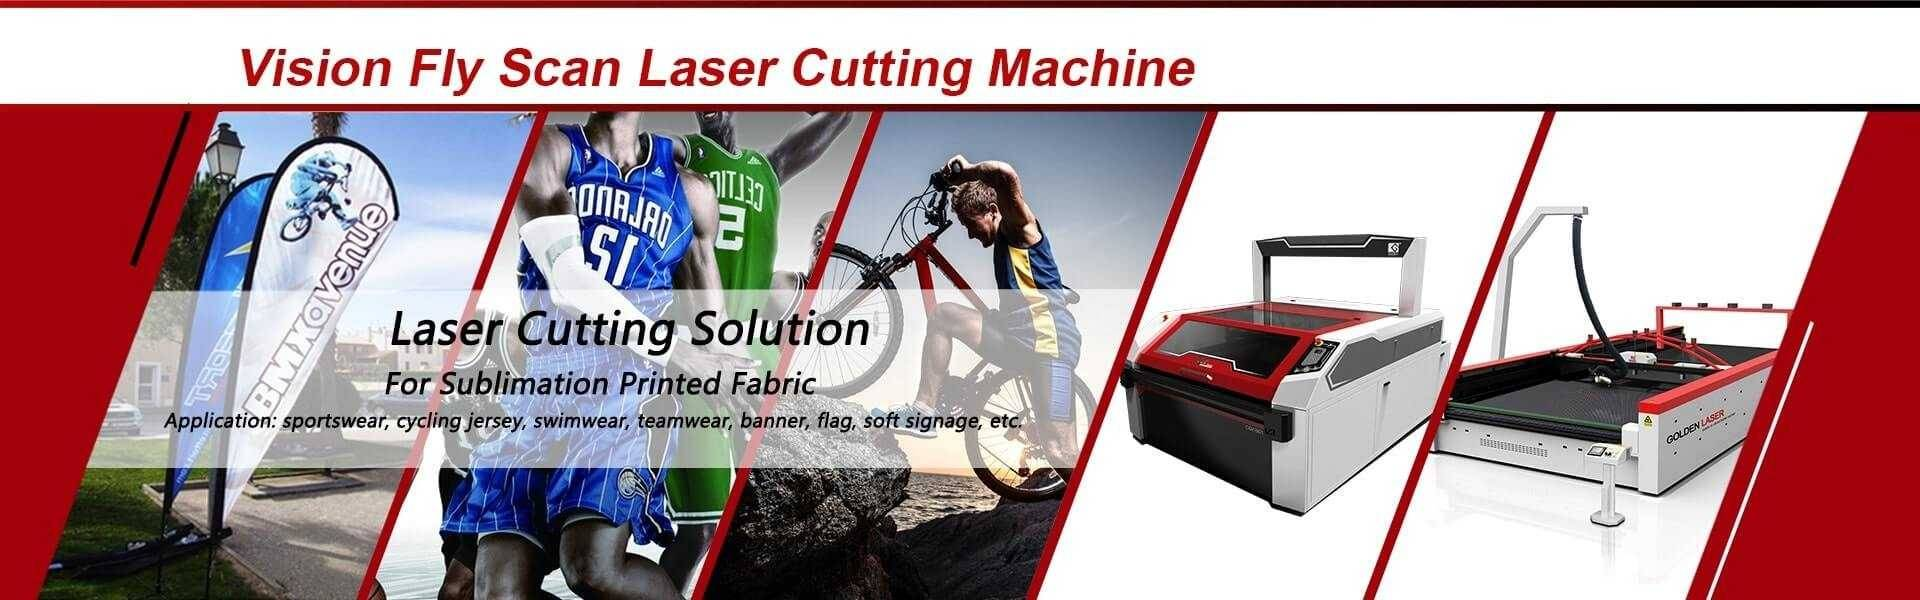 vizion laser cutting machine-SGIA banner